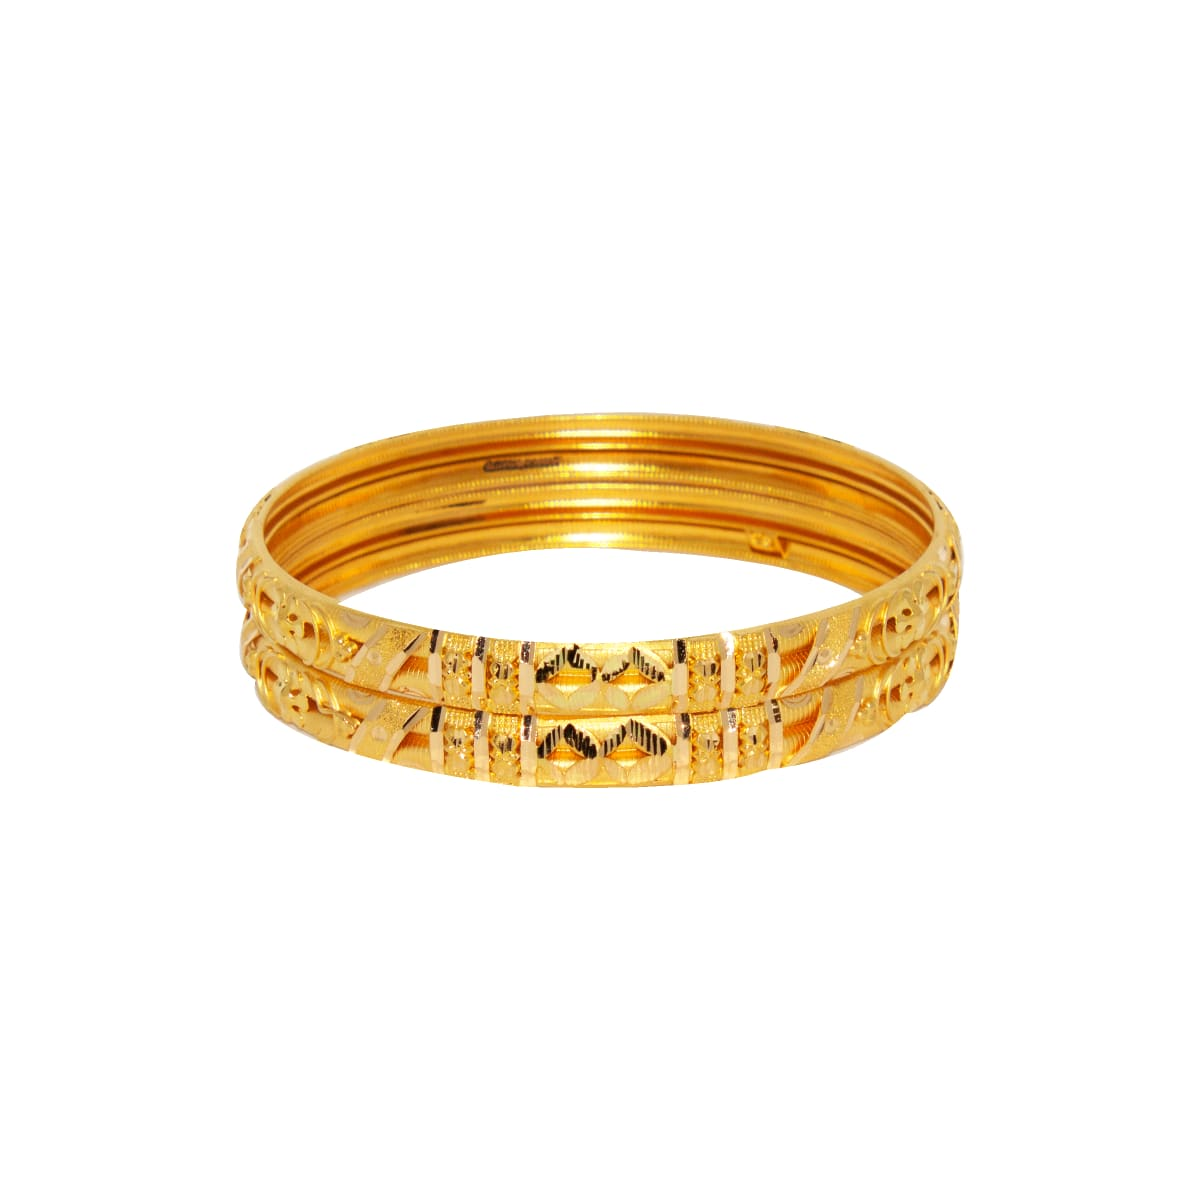 Regal Bangle